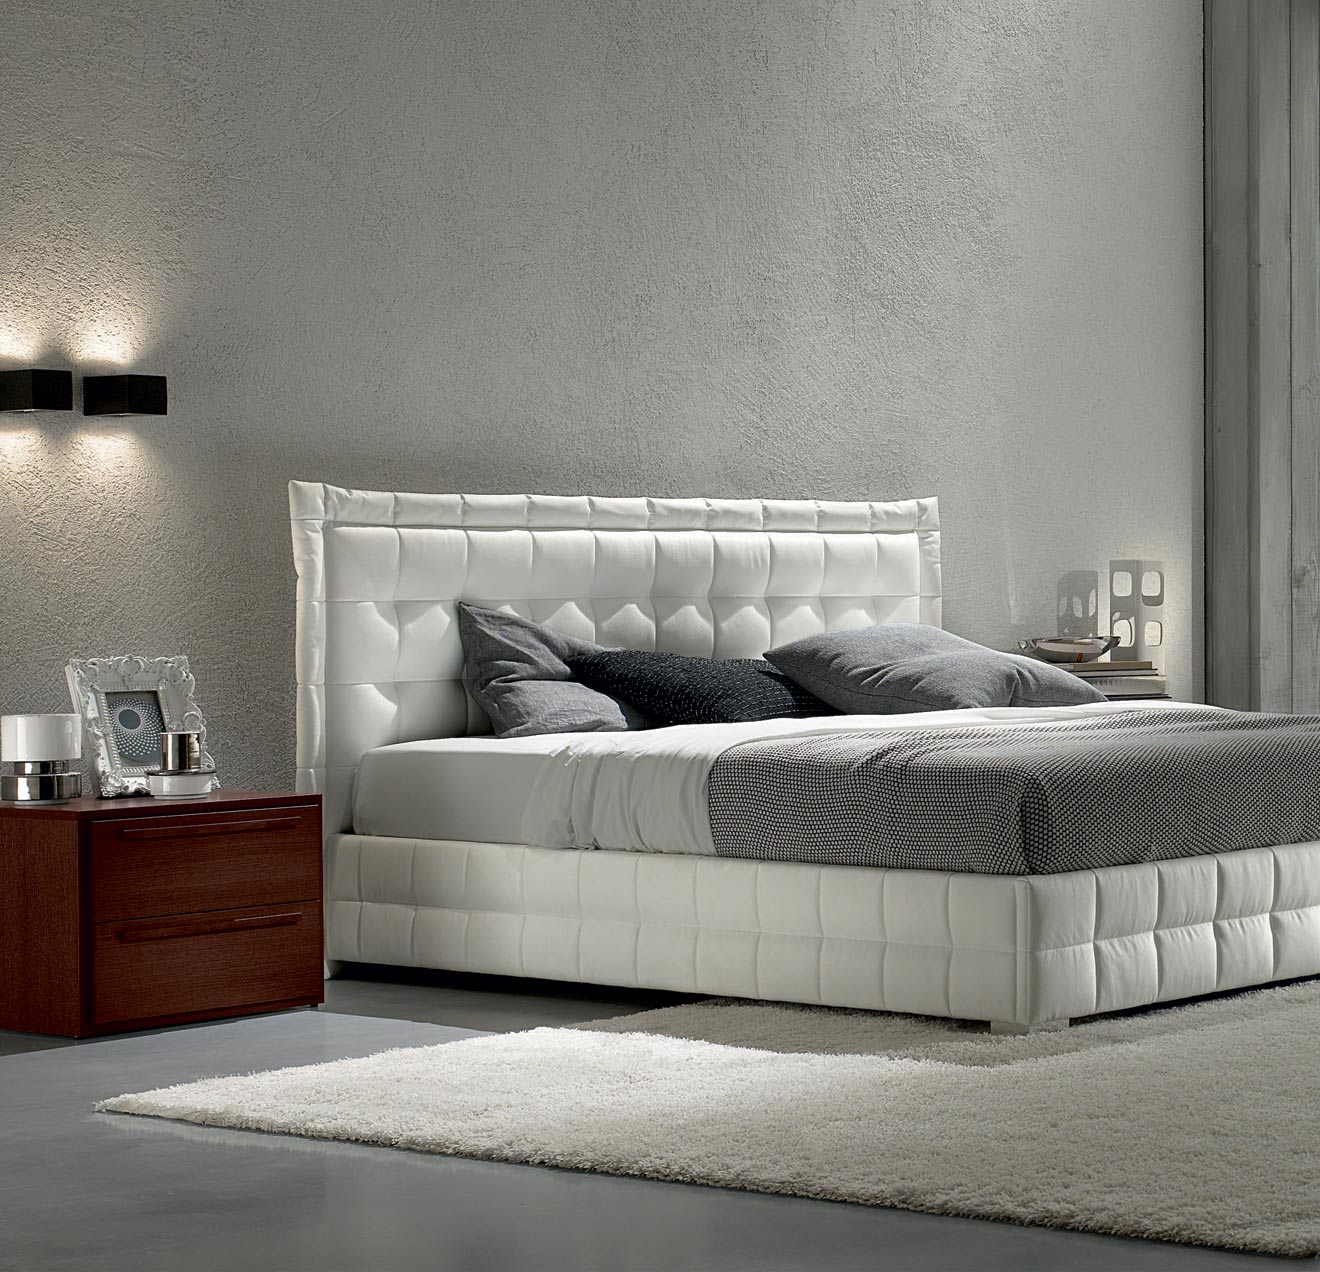 custom-bedroom-furniture-designs-with-image-of-bedroom-furniture-collection-fresh-at-gallery